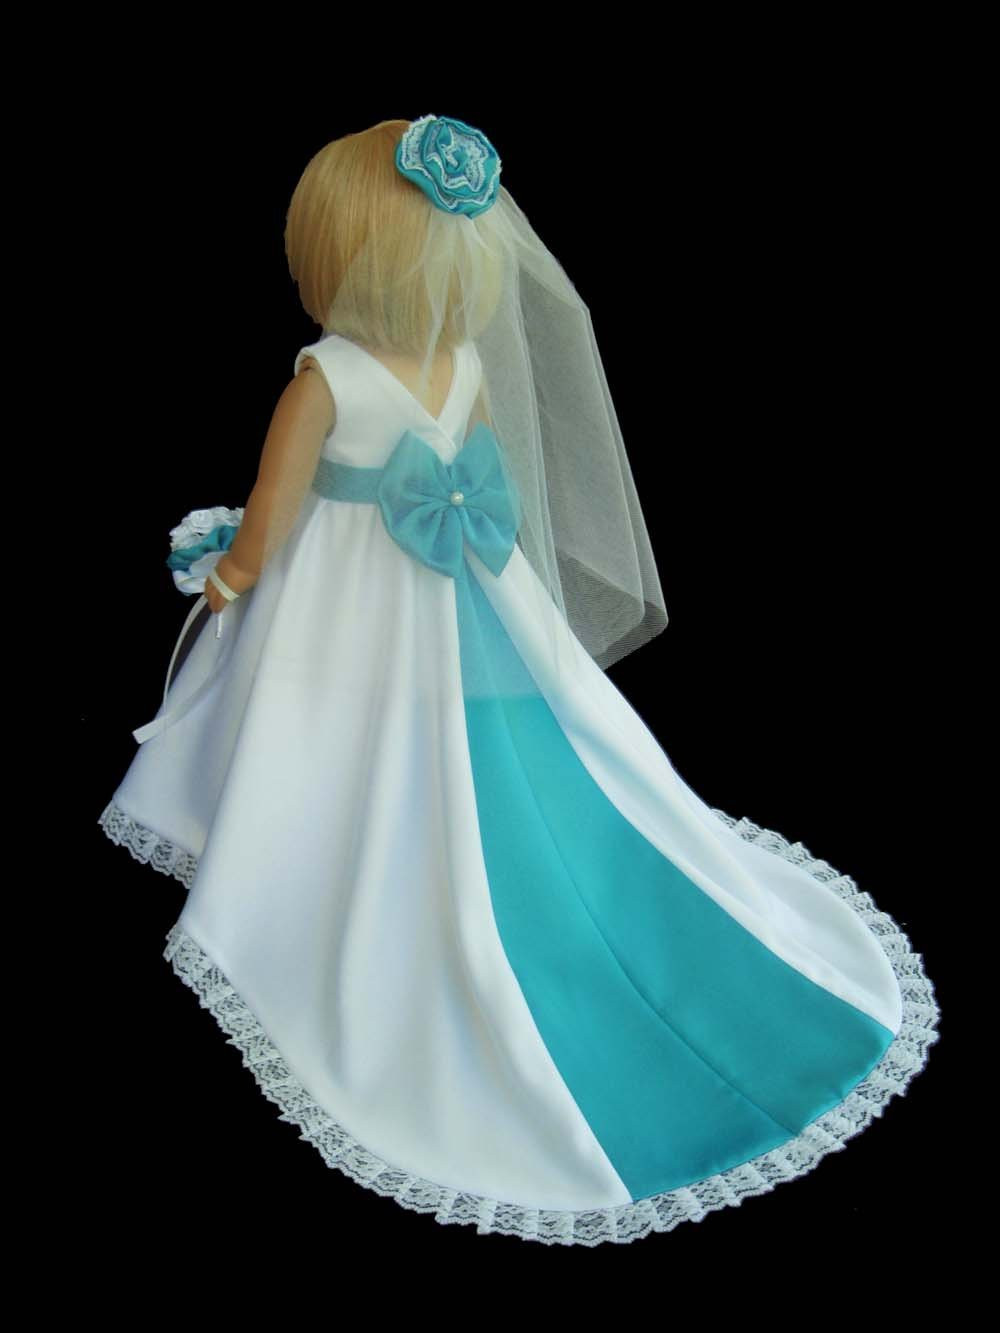 Best Of 301 Moved Permanently American Girl Doll Wedding Dress Of New American Girl Doll Clothes Traditional Wedding Gown Dress American Girl Doll Wedding Dress